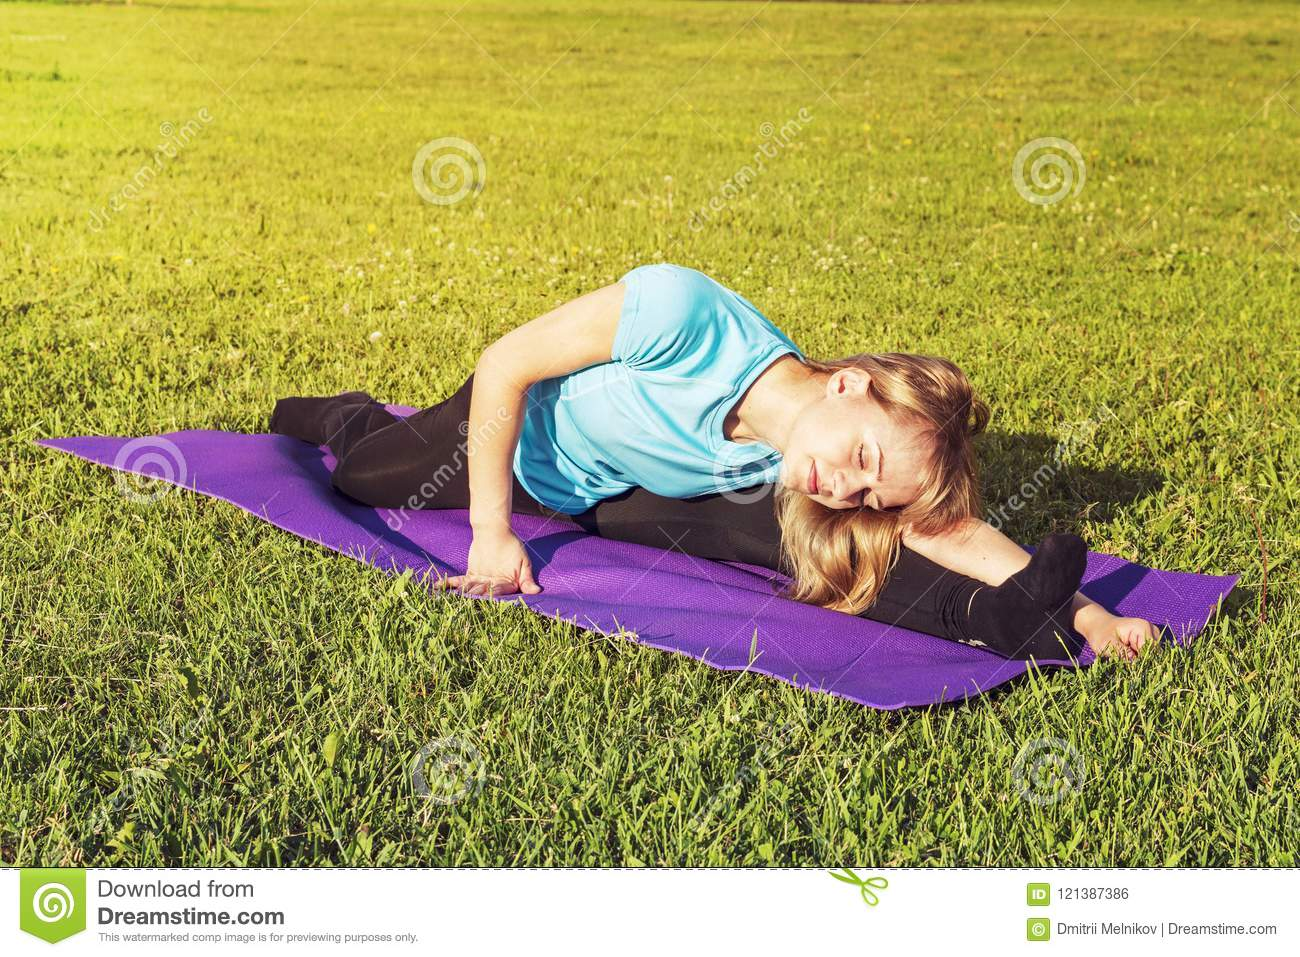 Blonde woman coach in a sporty short top and gym leggings makes a wide twine on the rug for yoga hands are raised